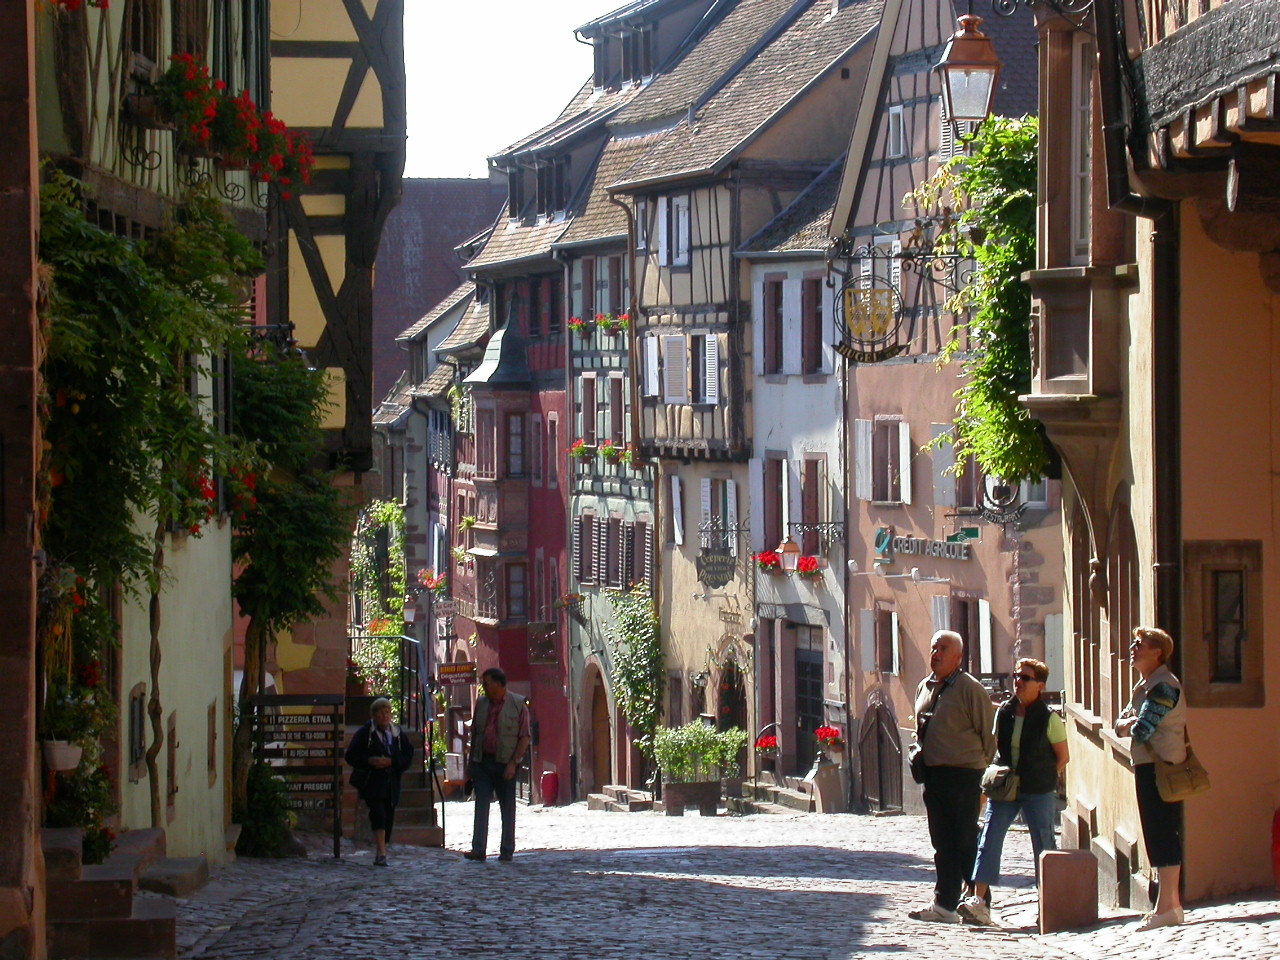 File:Riquewihr 070606 137.JPG - Wikimedia Commons: http://commons.wikimedia.org/wiki/File:Riquewihr_070606_137.JPG